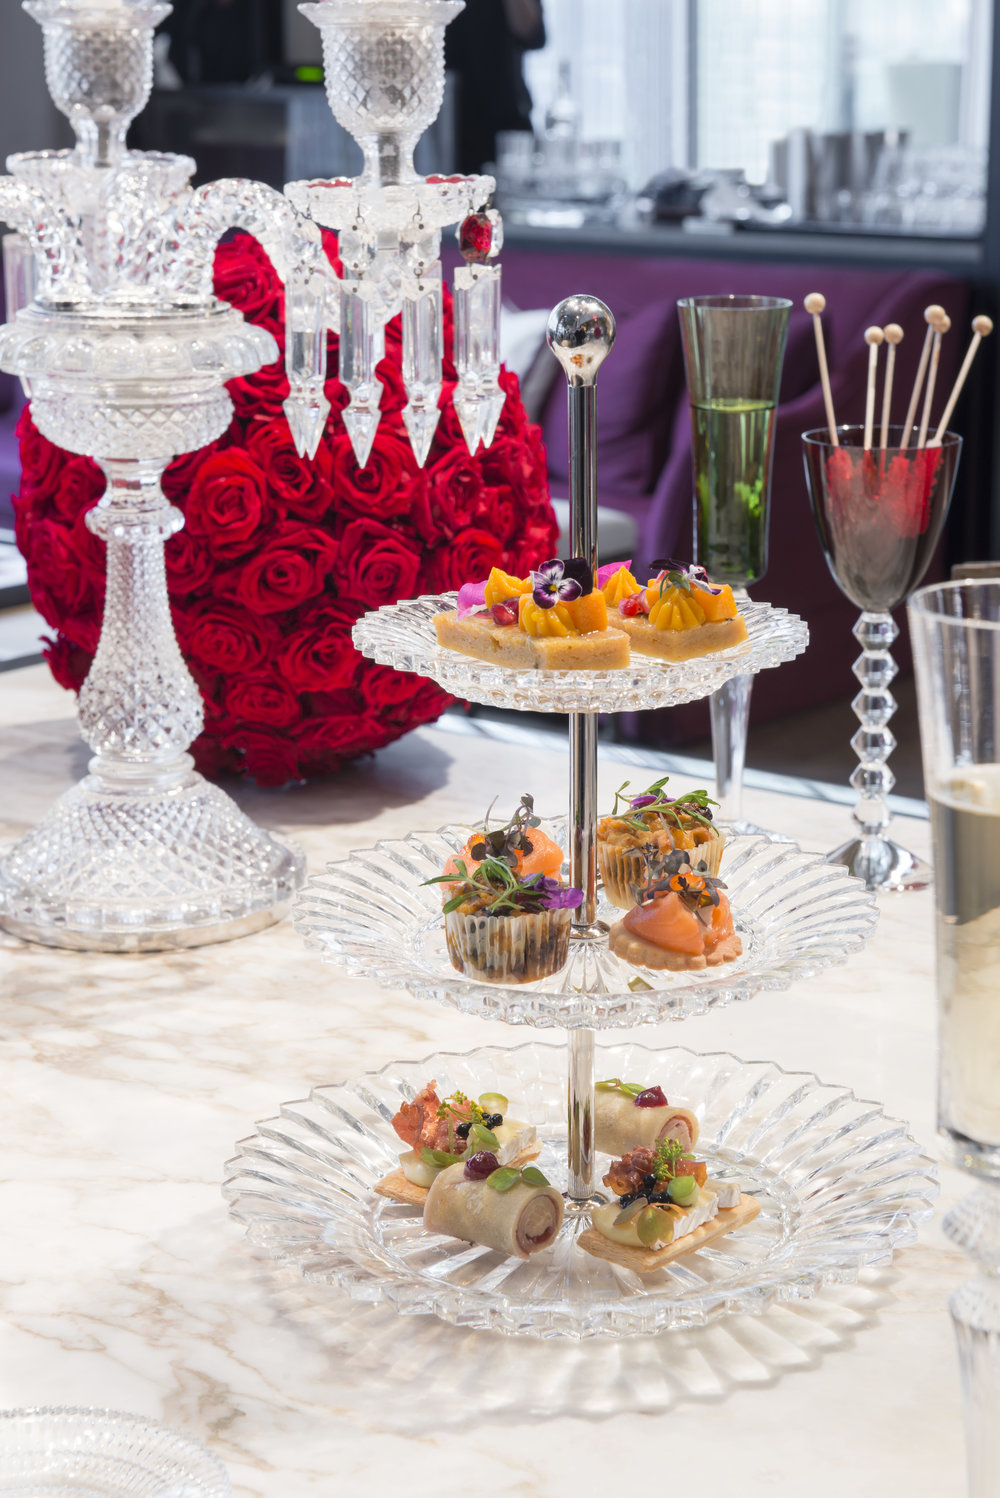 Baccarat Hotel Nutcracker Tea II - photo by Andrew Werner.jpg